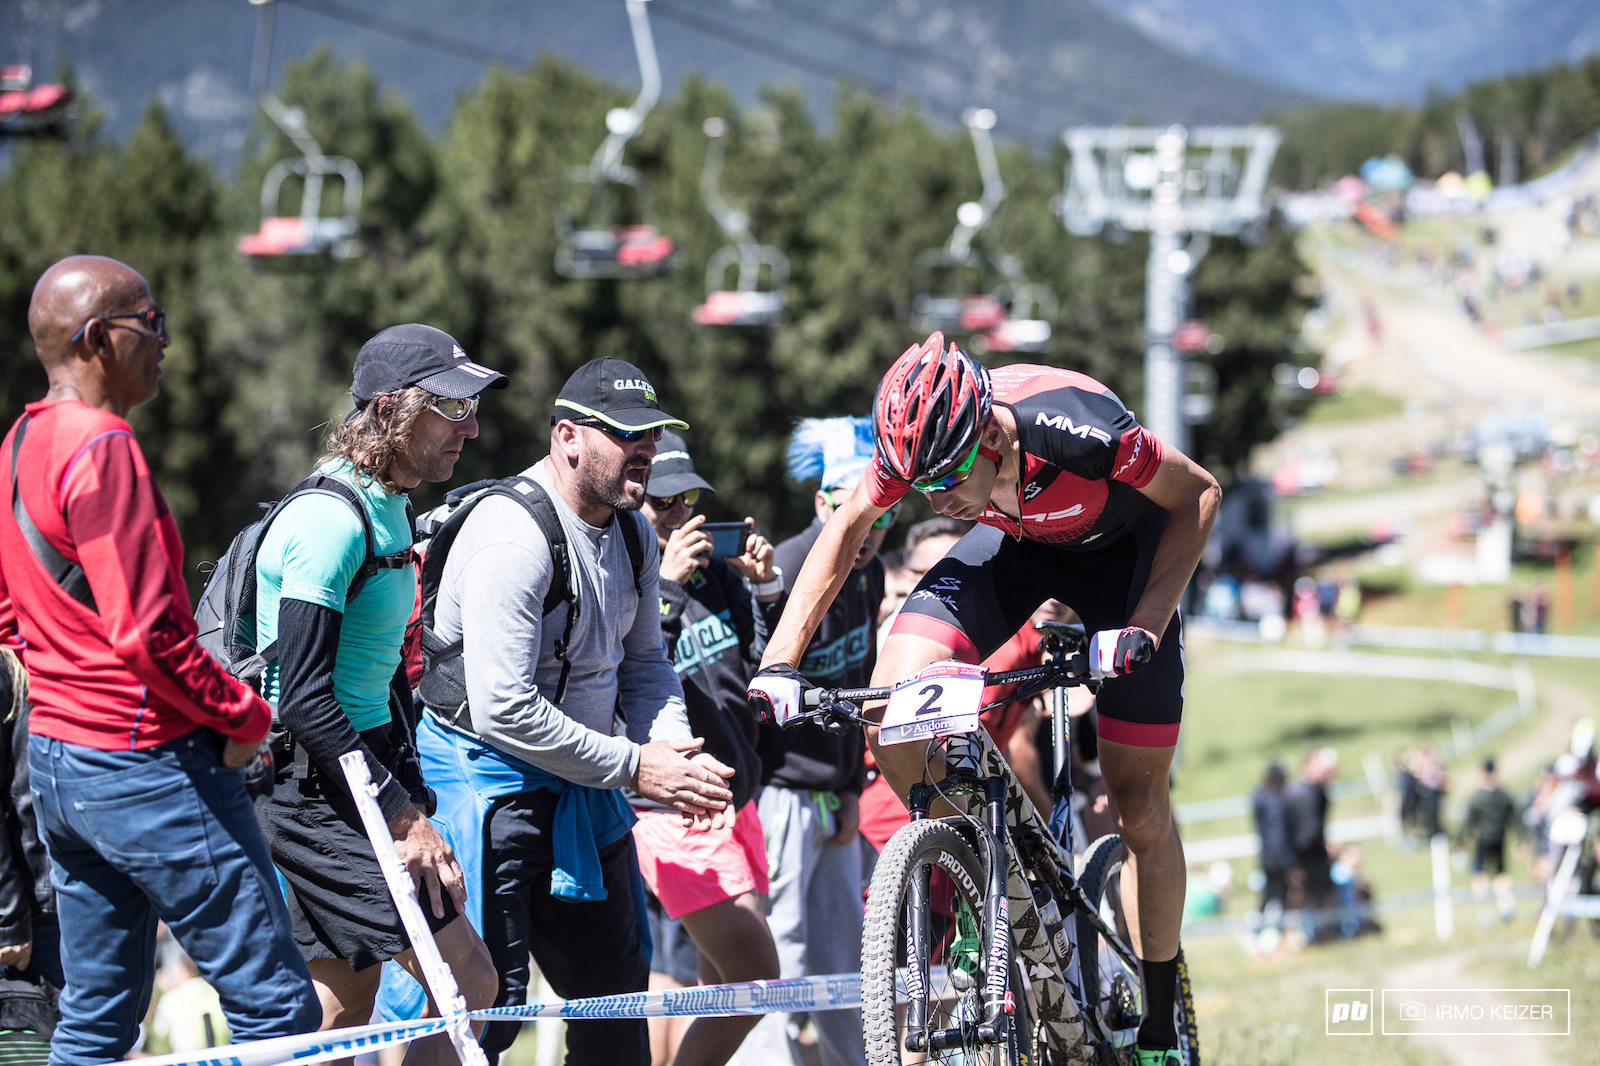 David Valero had to settle for 22nd as a flat threw him back in the field. Catching back up on a course on this altitude is very very hard.